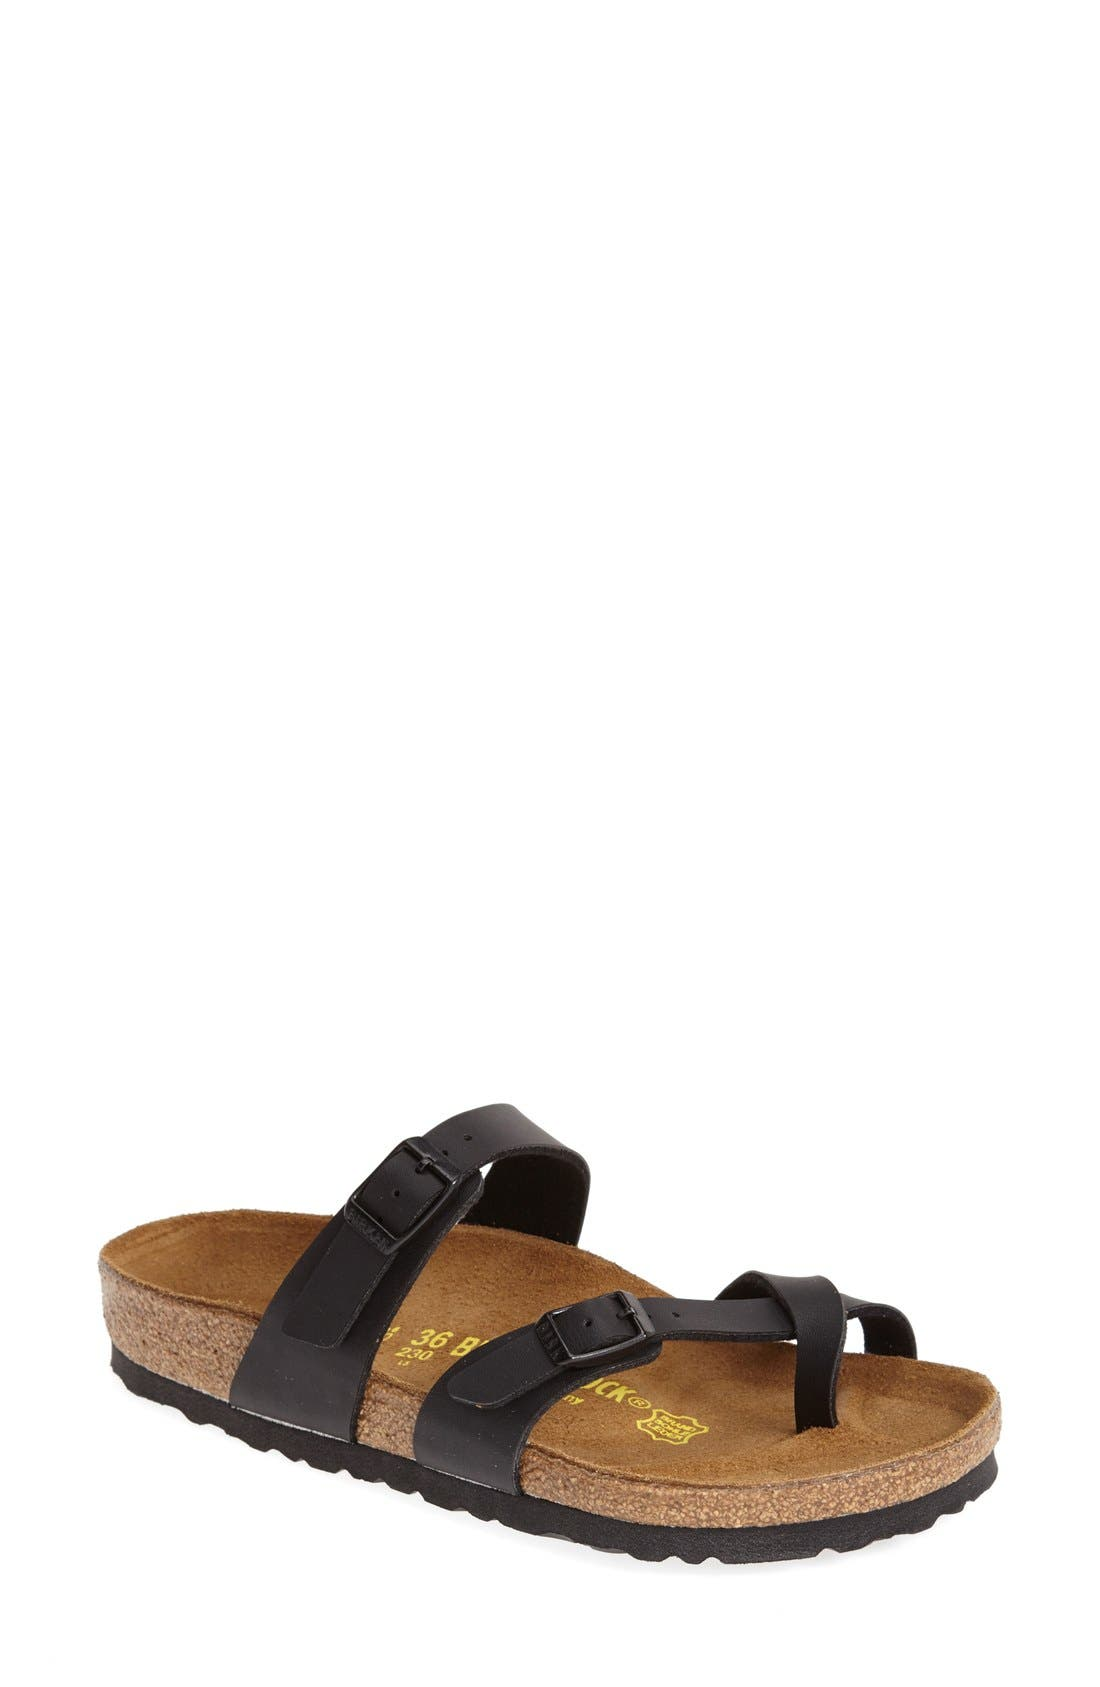 Mayari Birko-Flor Sandal,                             Main thumbnail 1, color,                             BLACK